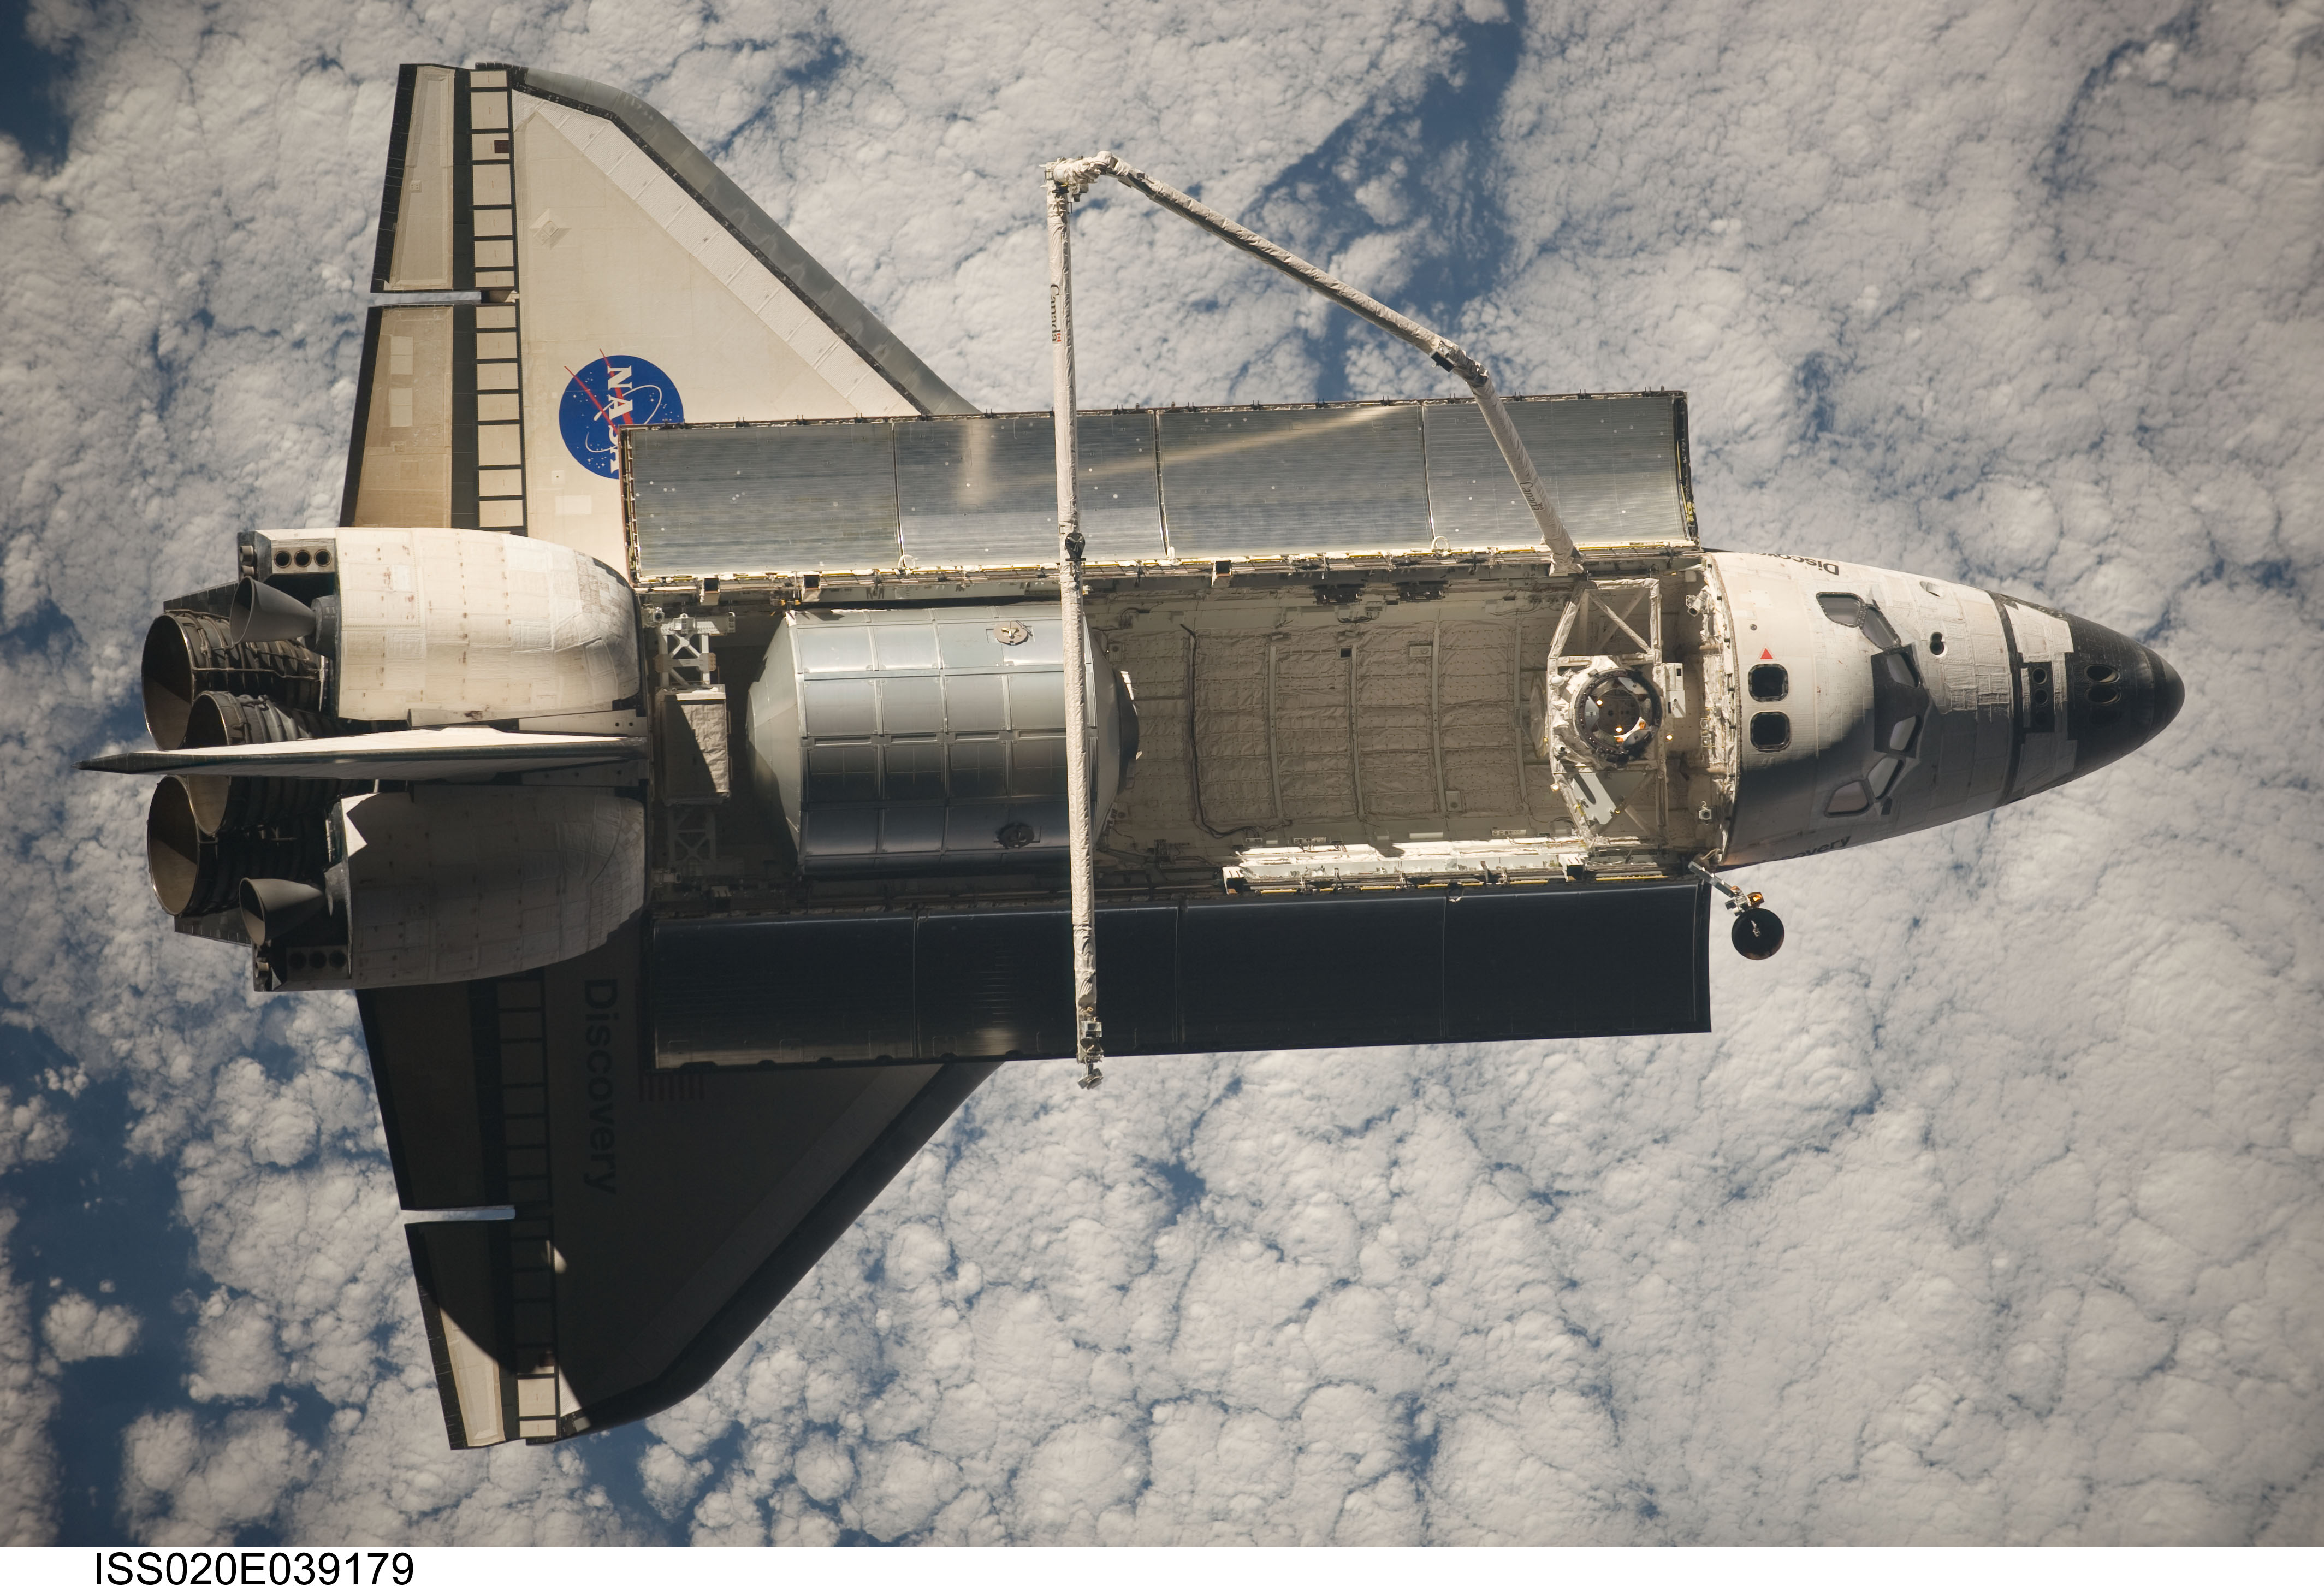 space shuttle discovery - HD1920×1276